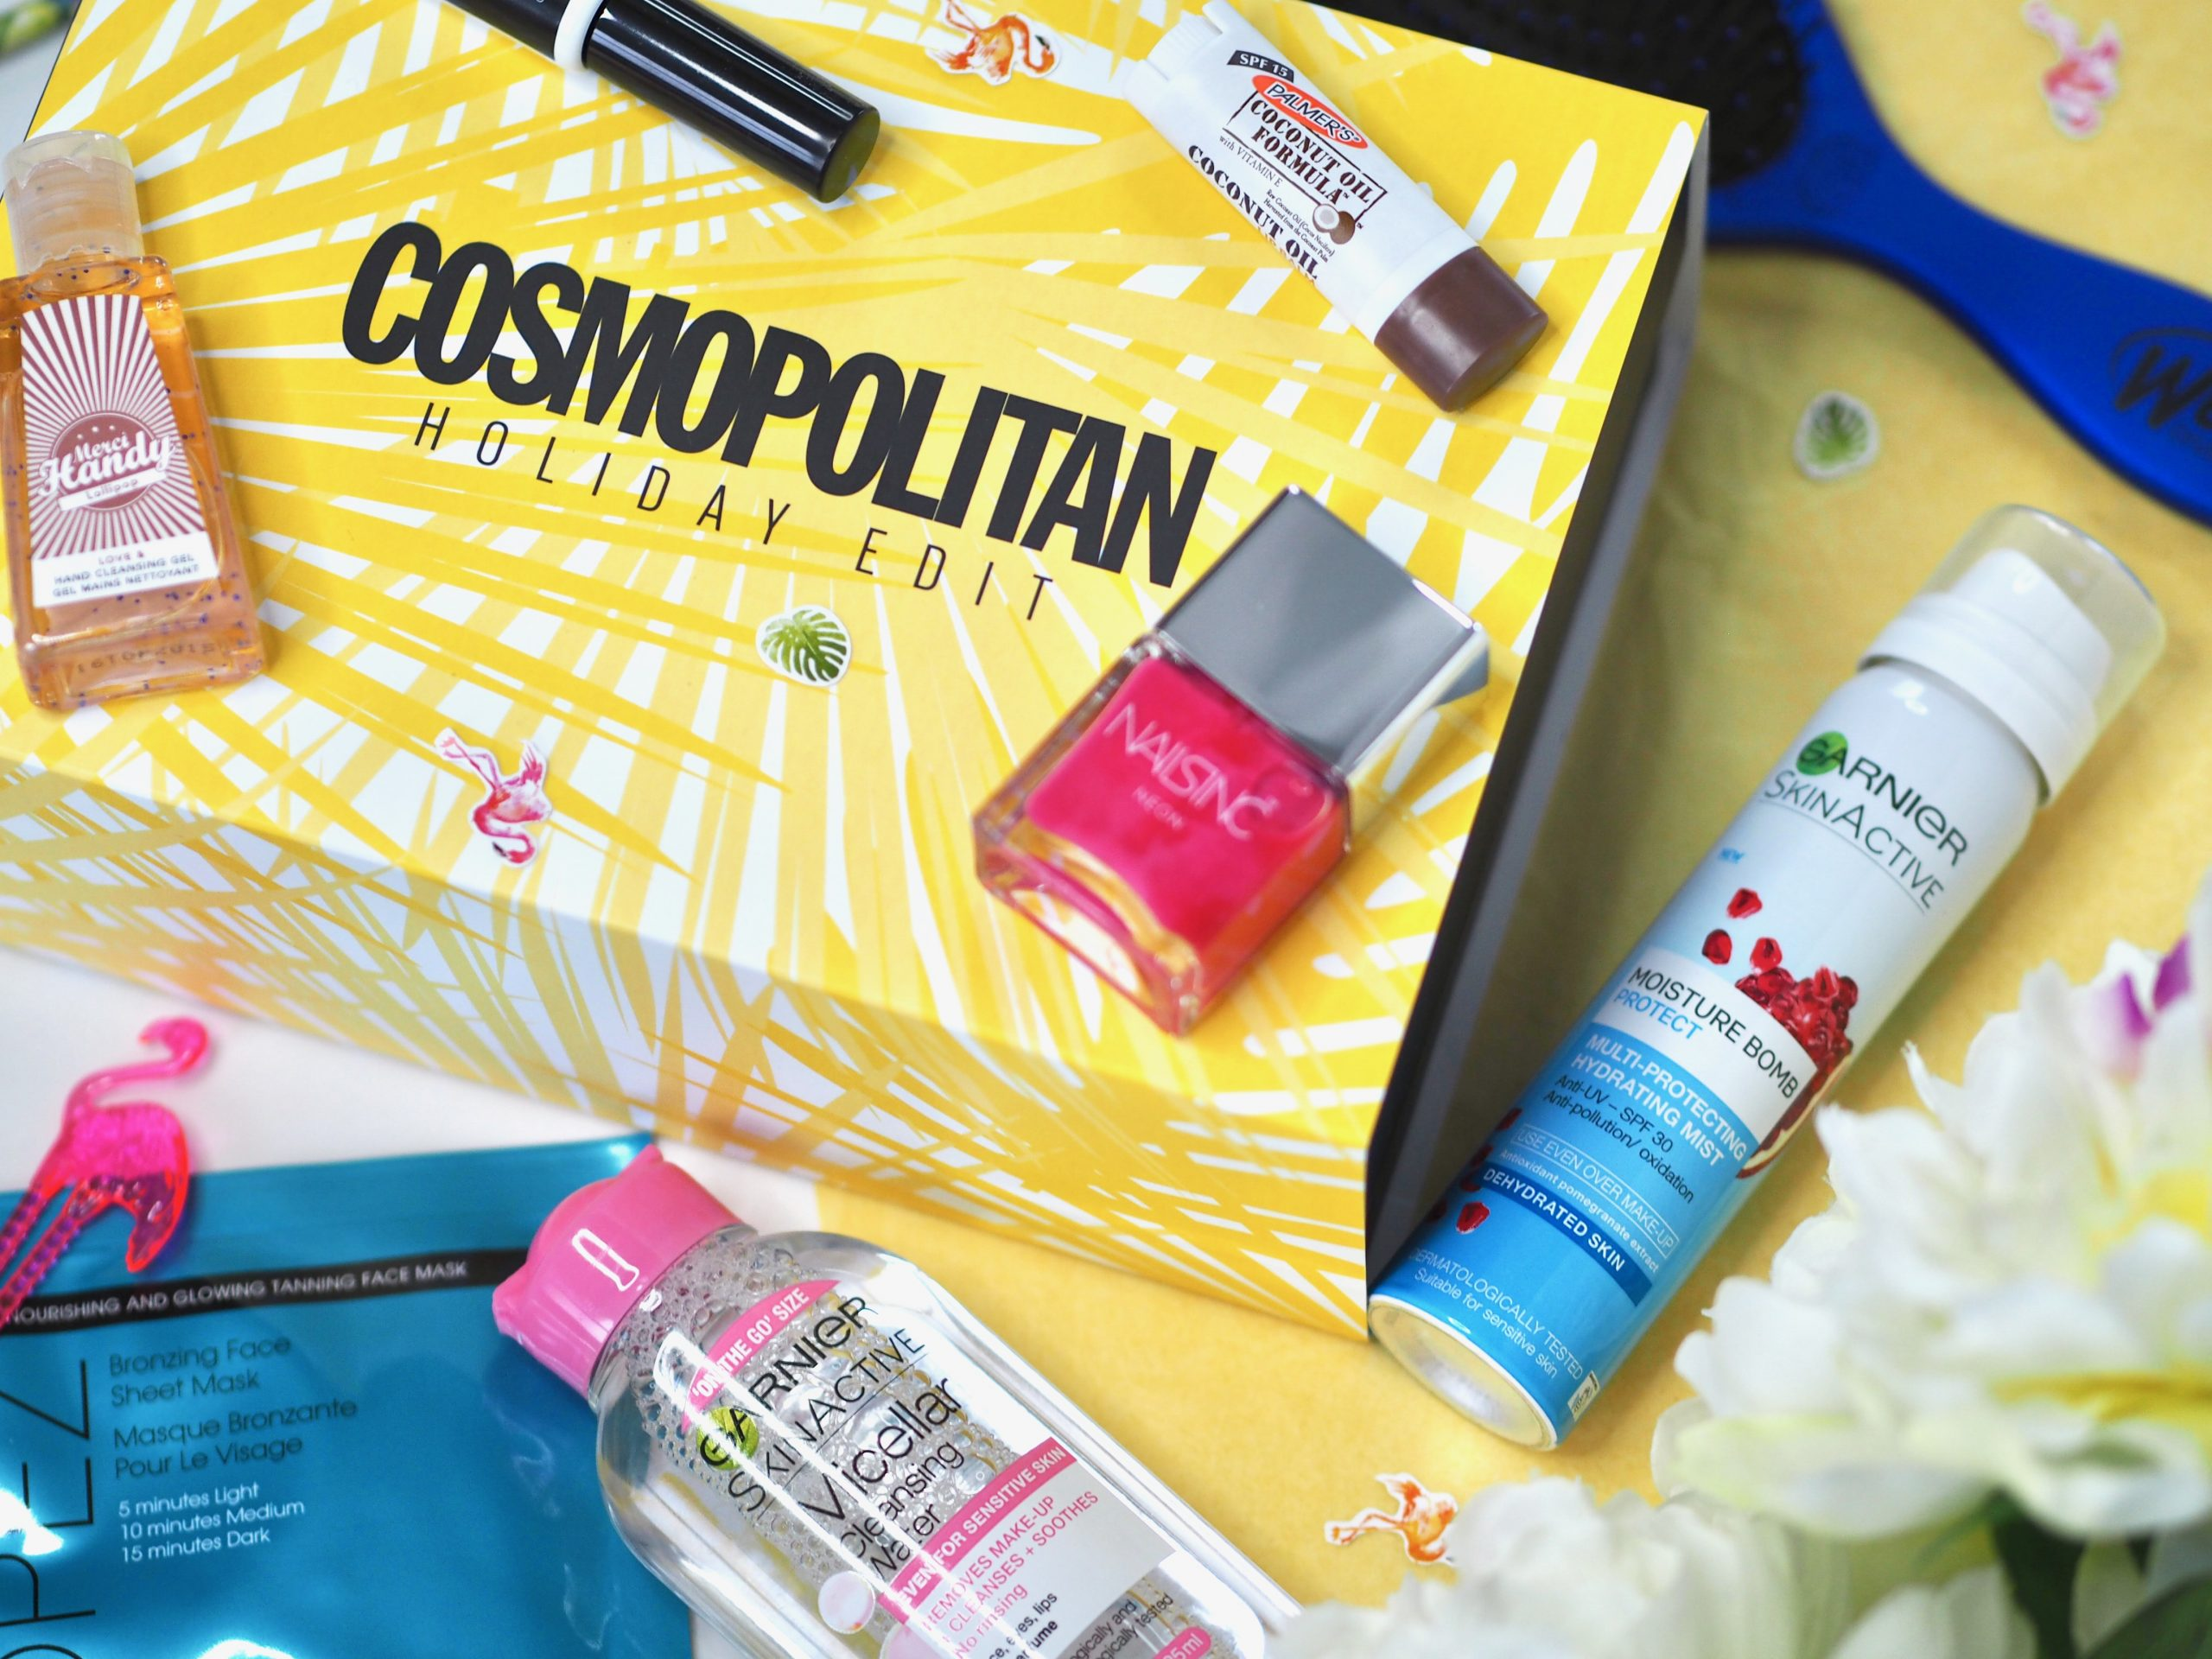 COSMOPOLITAN HOLIDAY EDIT - LATEST IN BEAUTY